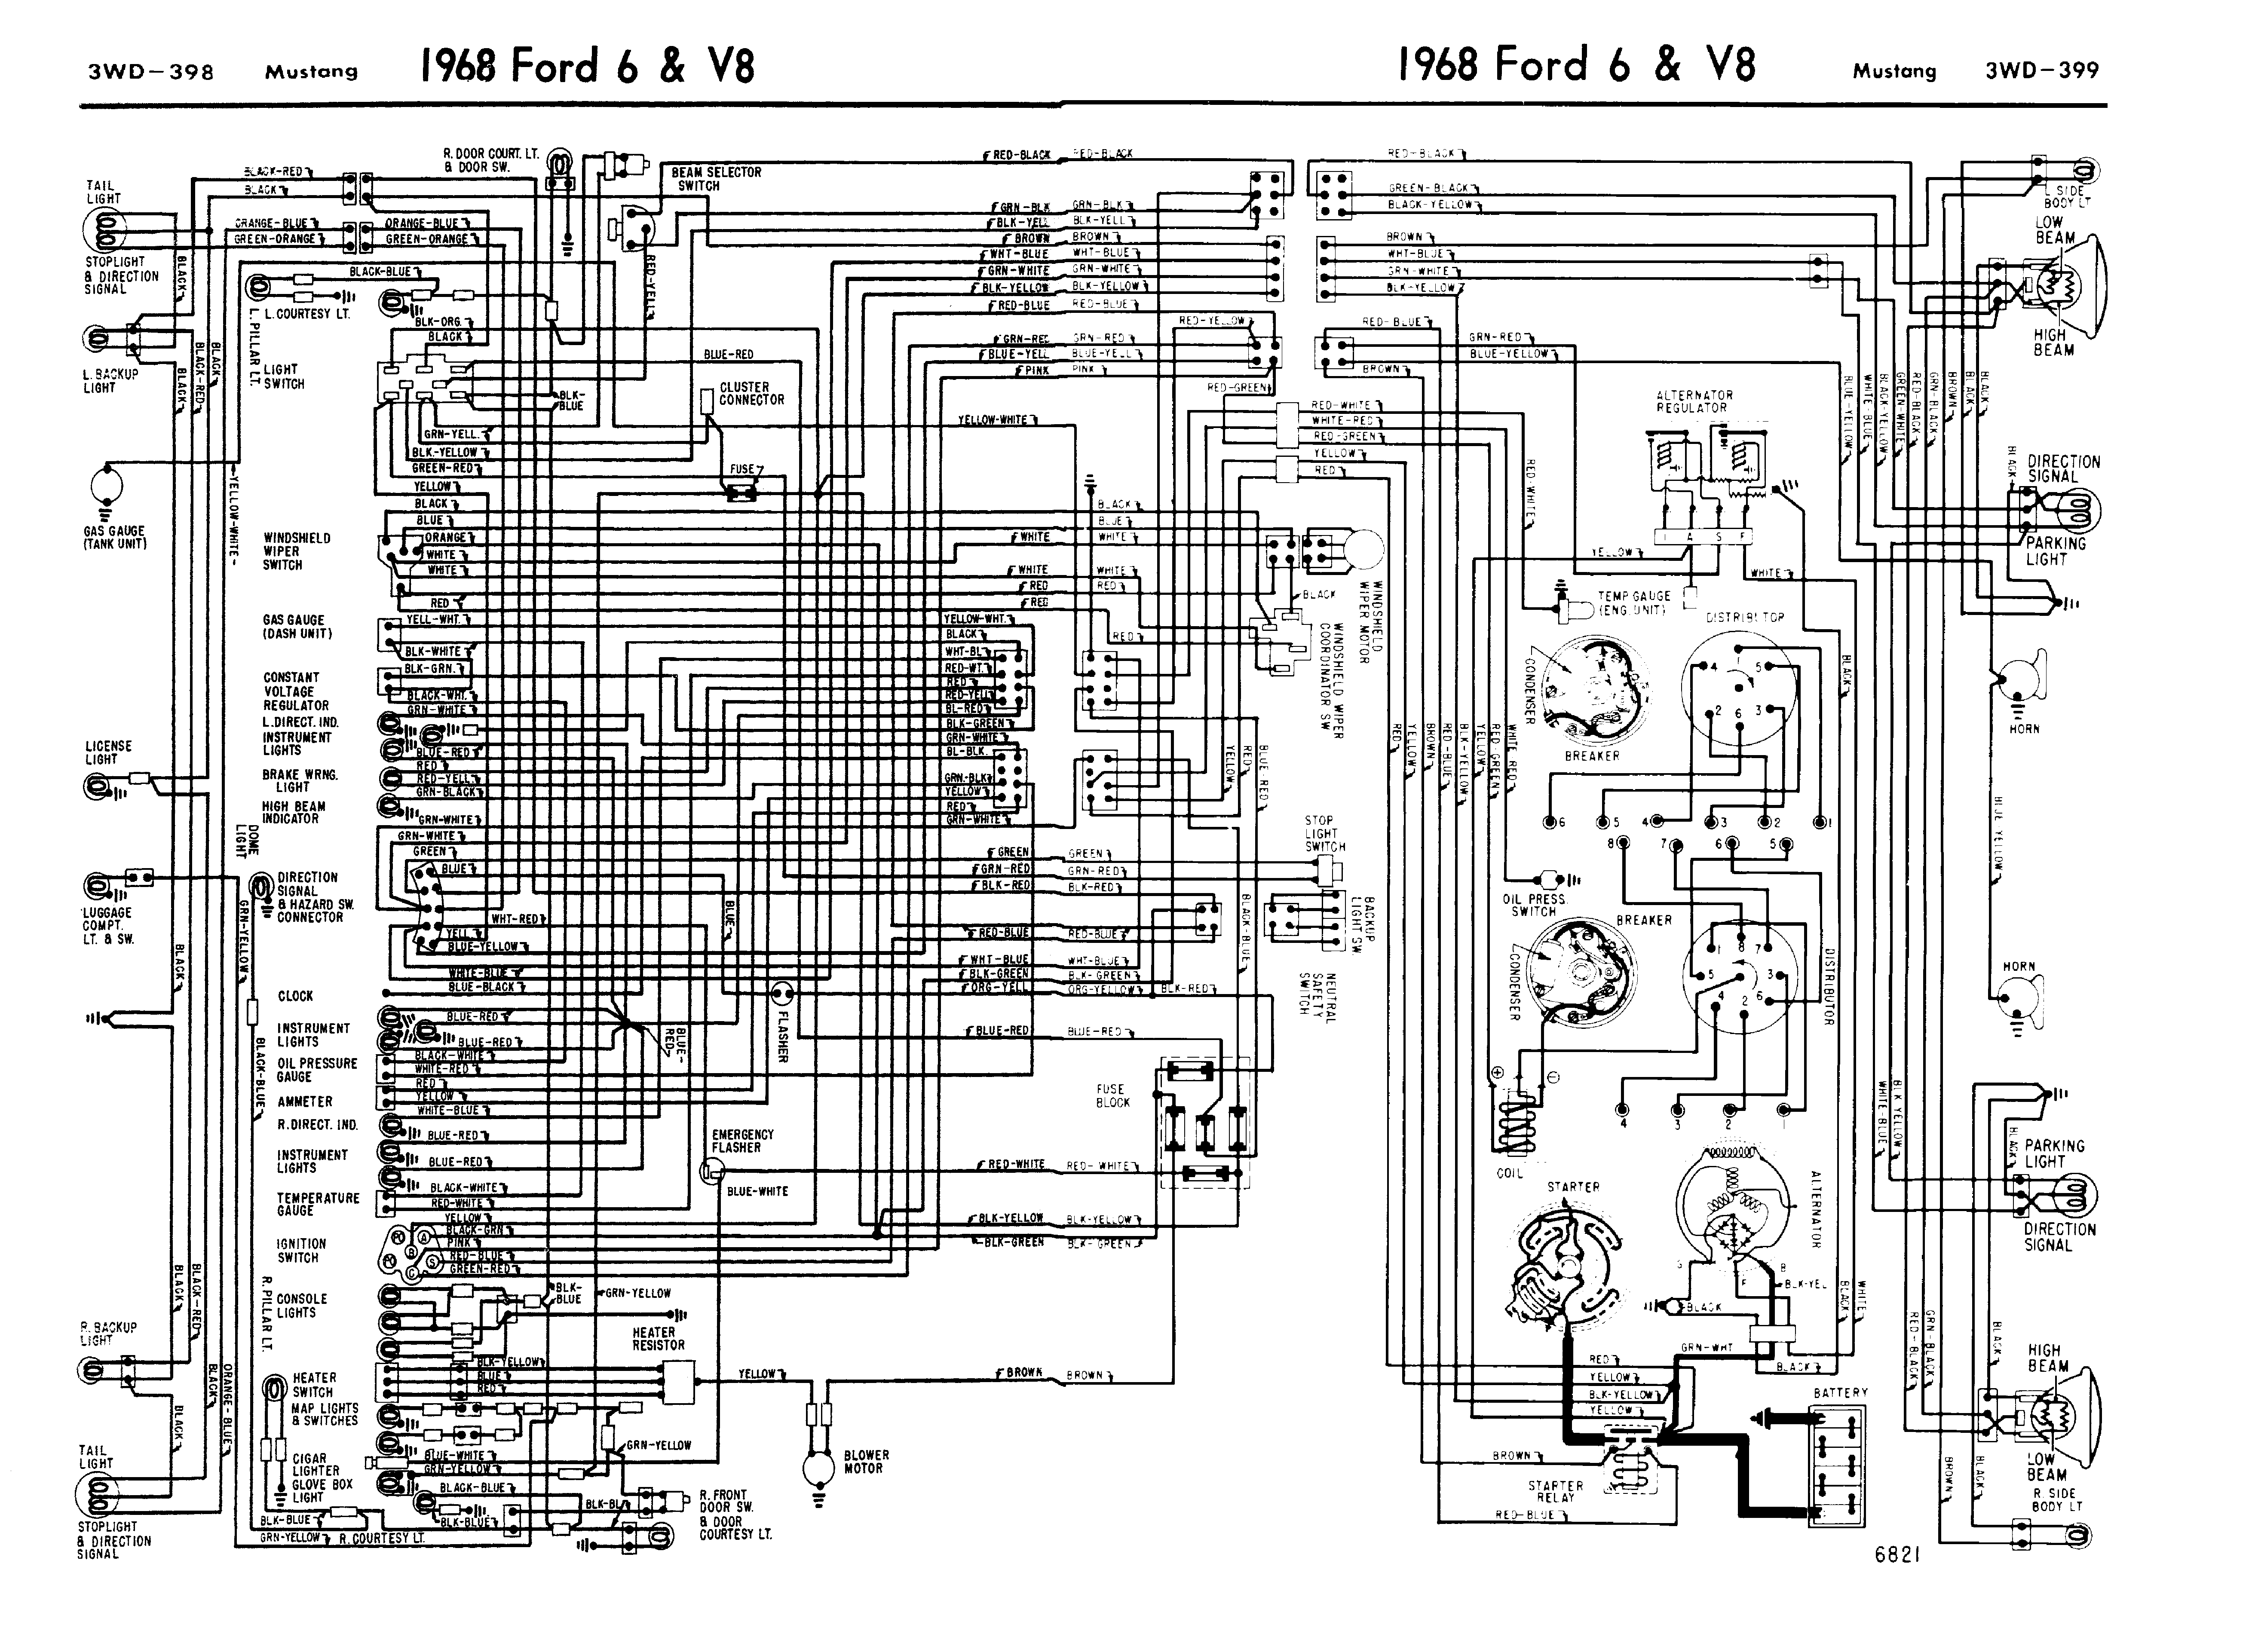 ford 289 wiring diagram manual e book ford 289 spark plug wiring diagram ford 289 wiring diagram [ 5246 x 3844 Pixel ]